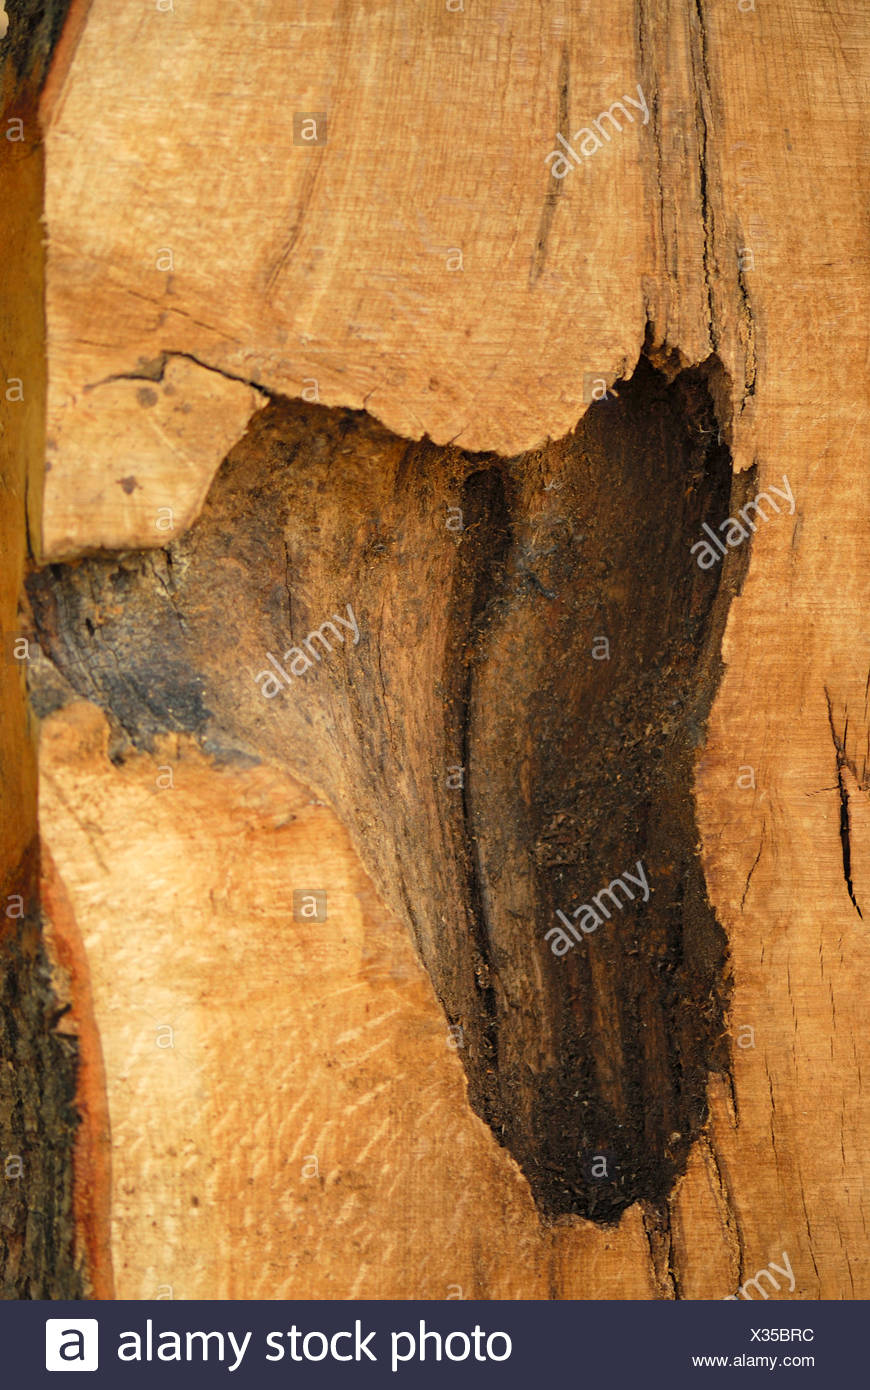 woodpeckers, wrynecks, piculets (Picidae), cross section of a tree trunk with woodpecker cavity, Germany - Stock Image